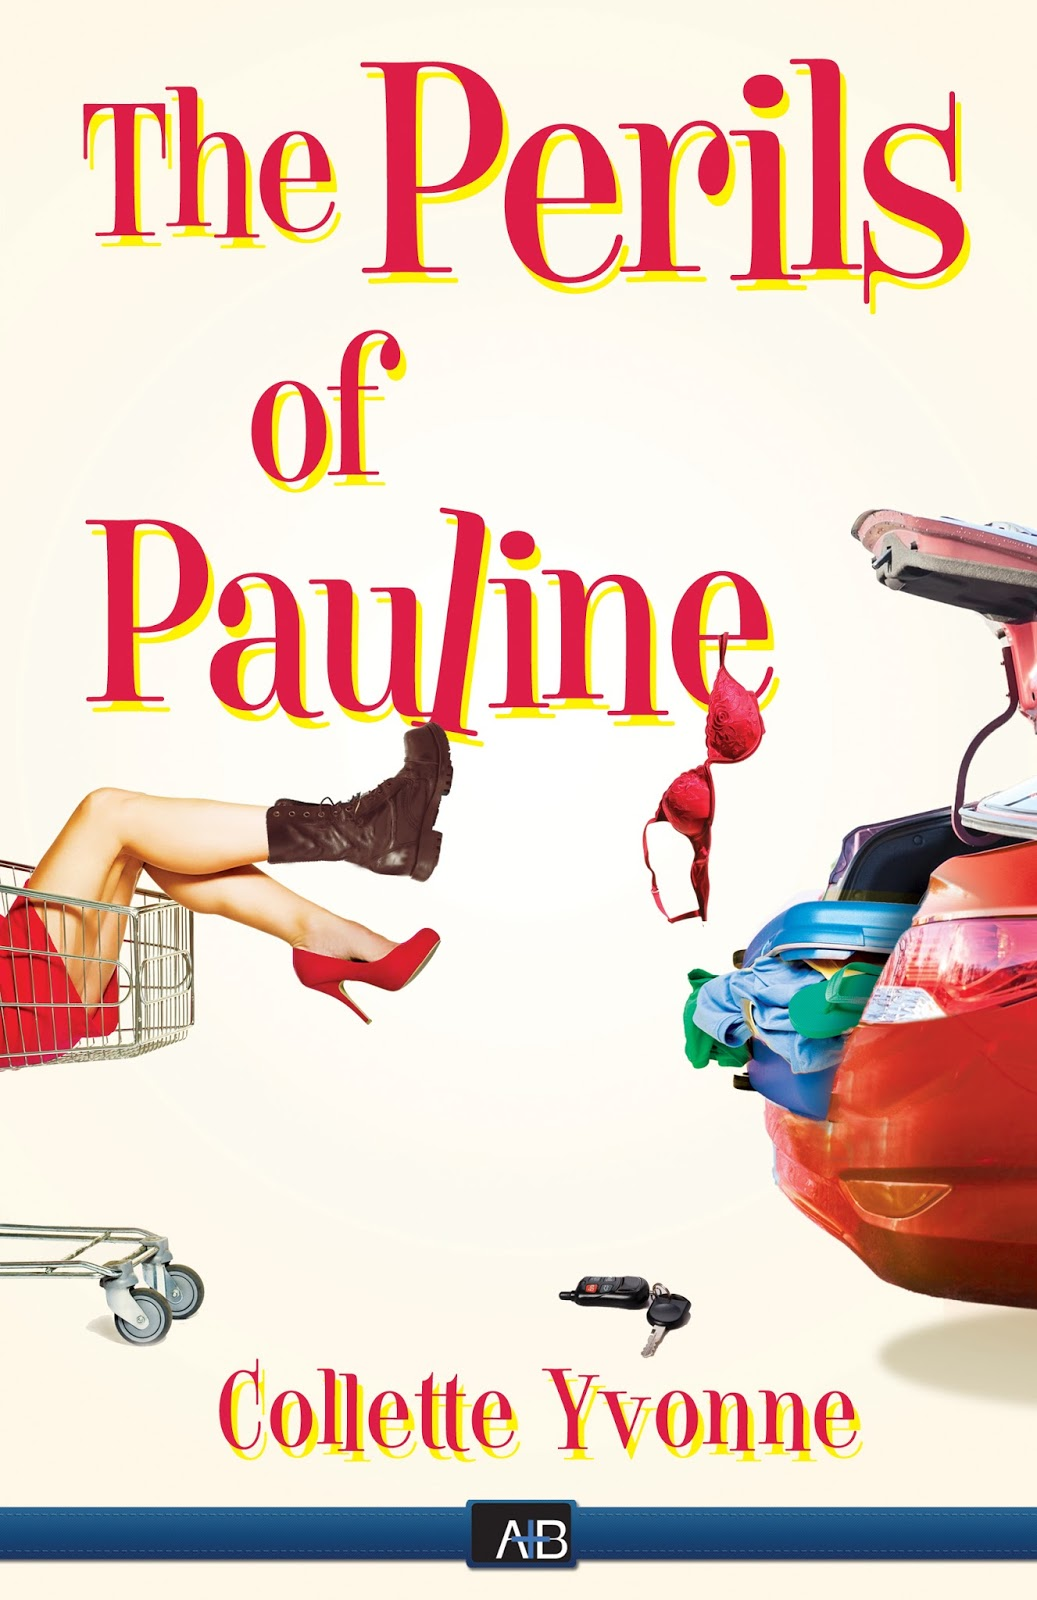 BOOK REVIEW: THE PERILS OF PAULINE BY COLLETTE YVONNE